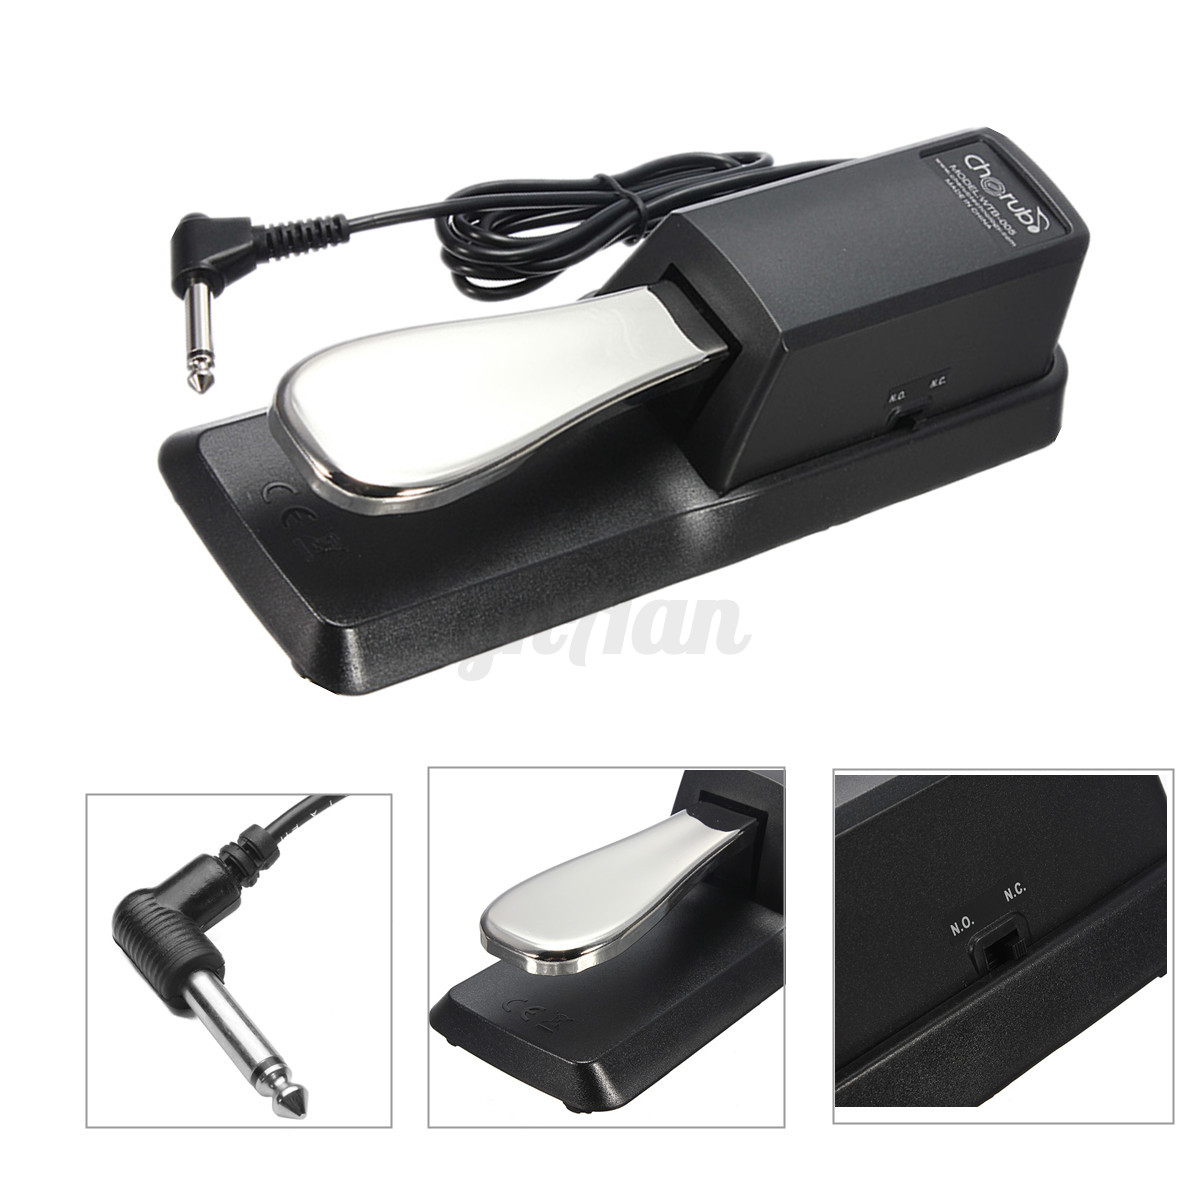 keyboard digital piano damper sustain foot pedal for yamaha casio roland korg ebay. Black Bedroom Furniture Sets. Home Design Ideas